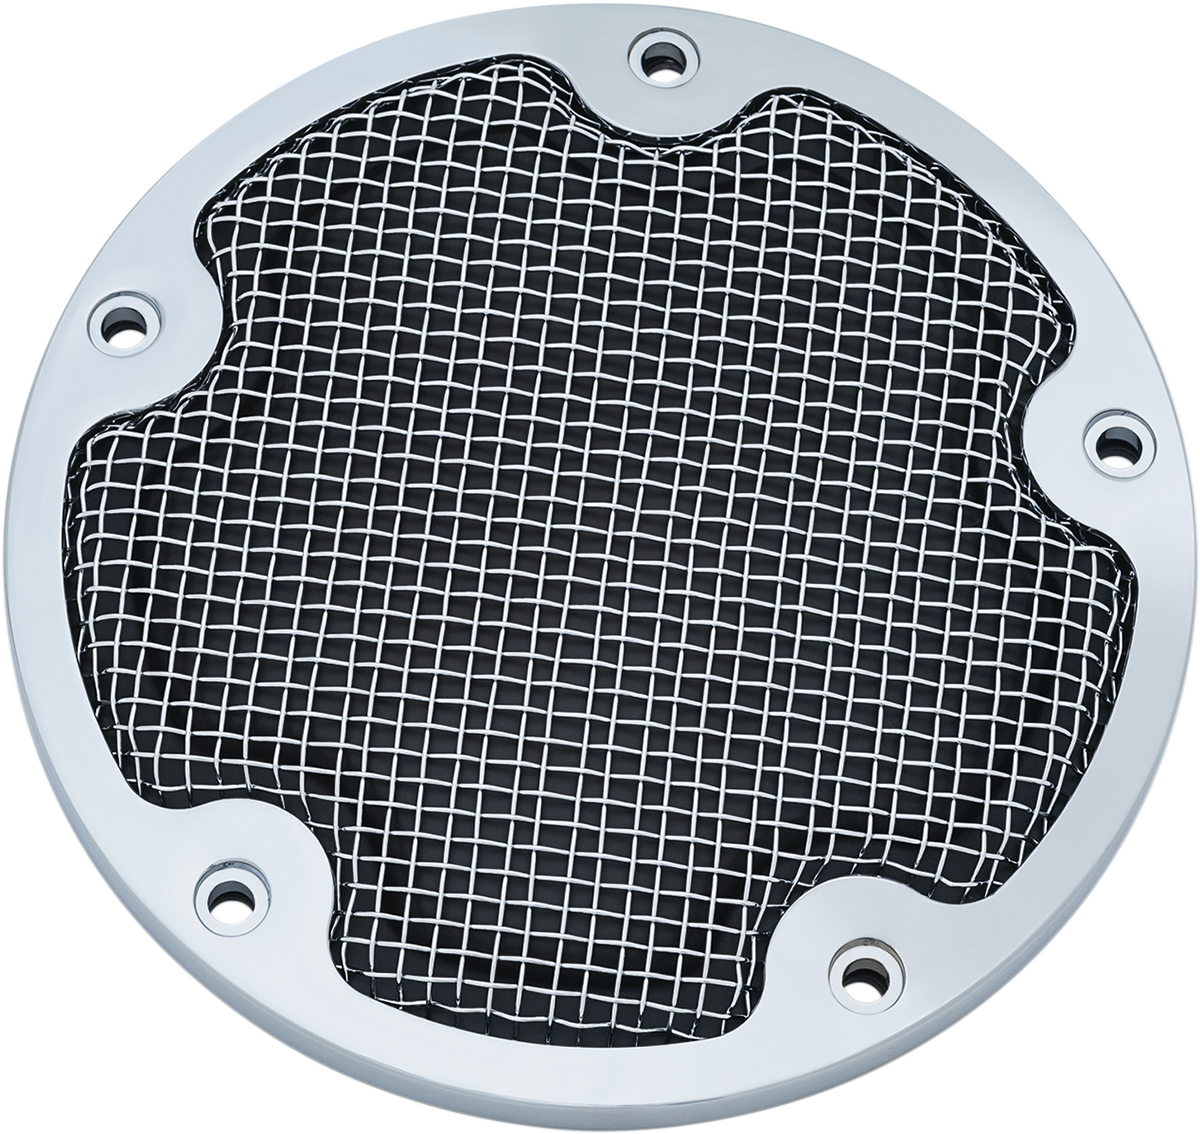 Kuryakyn 6524 Chrome Mesh 5 Hole Derby Cover for 99-17 Harley Dyna Touring FXST